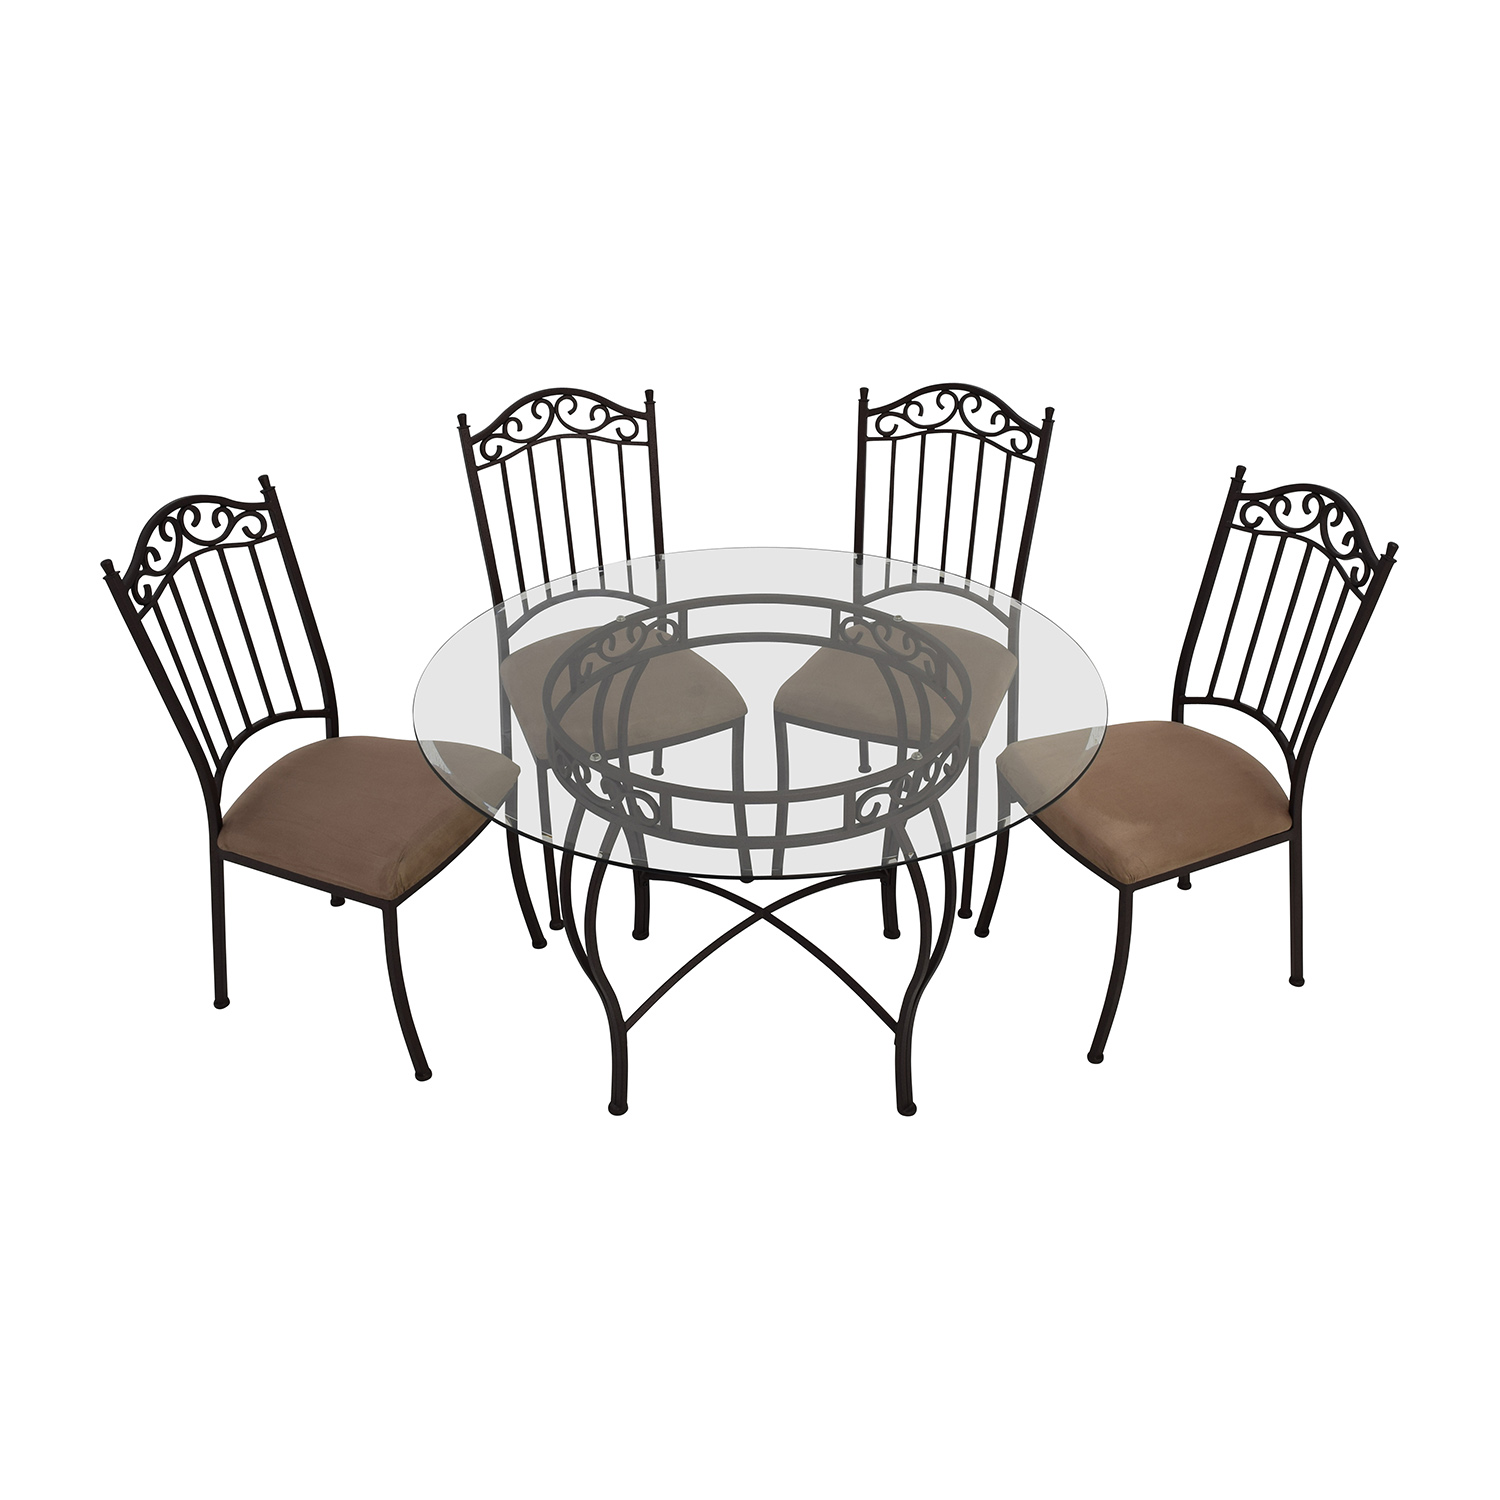 Wrought Iron Kitchen Tables: Wrought Iron Round Glass Table And Chairs / Tables